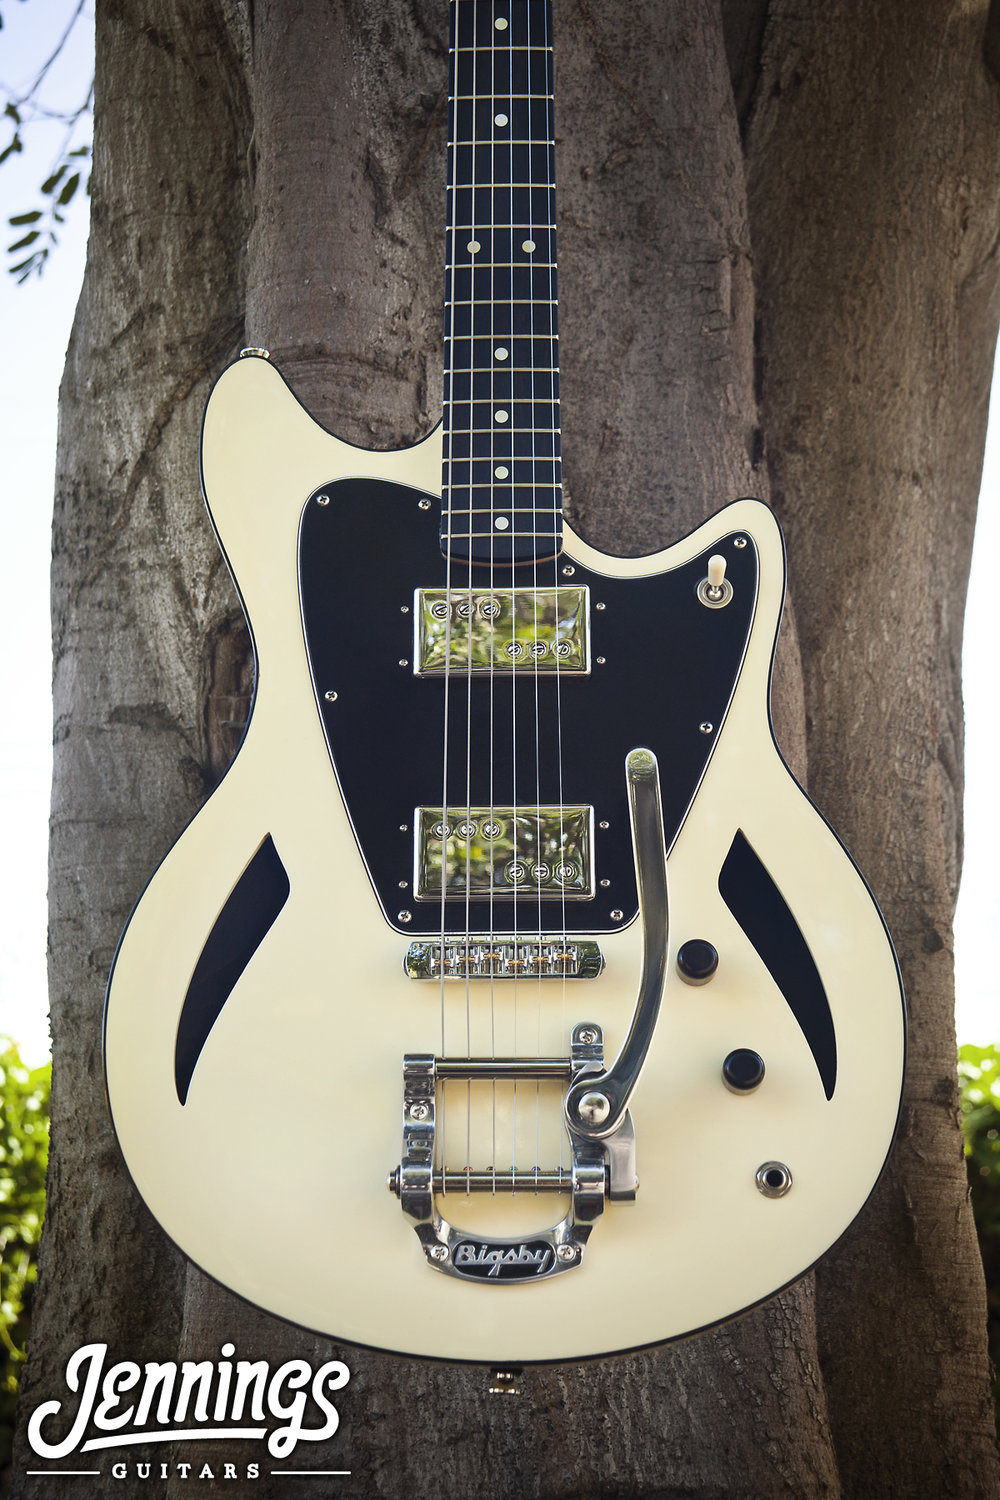 Cream Catalina Jennings Guitars (4).jpg